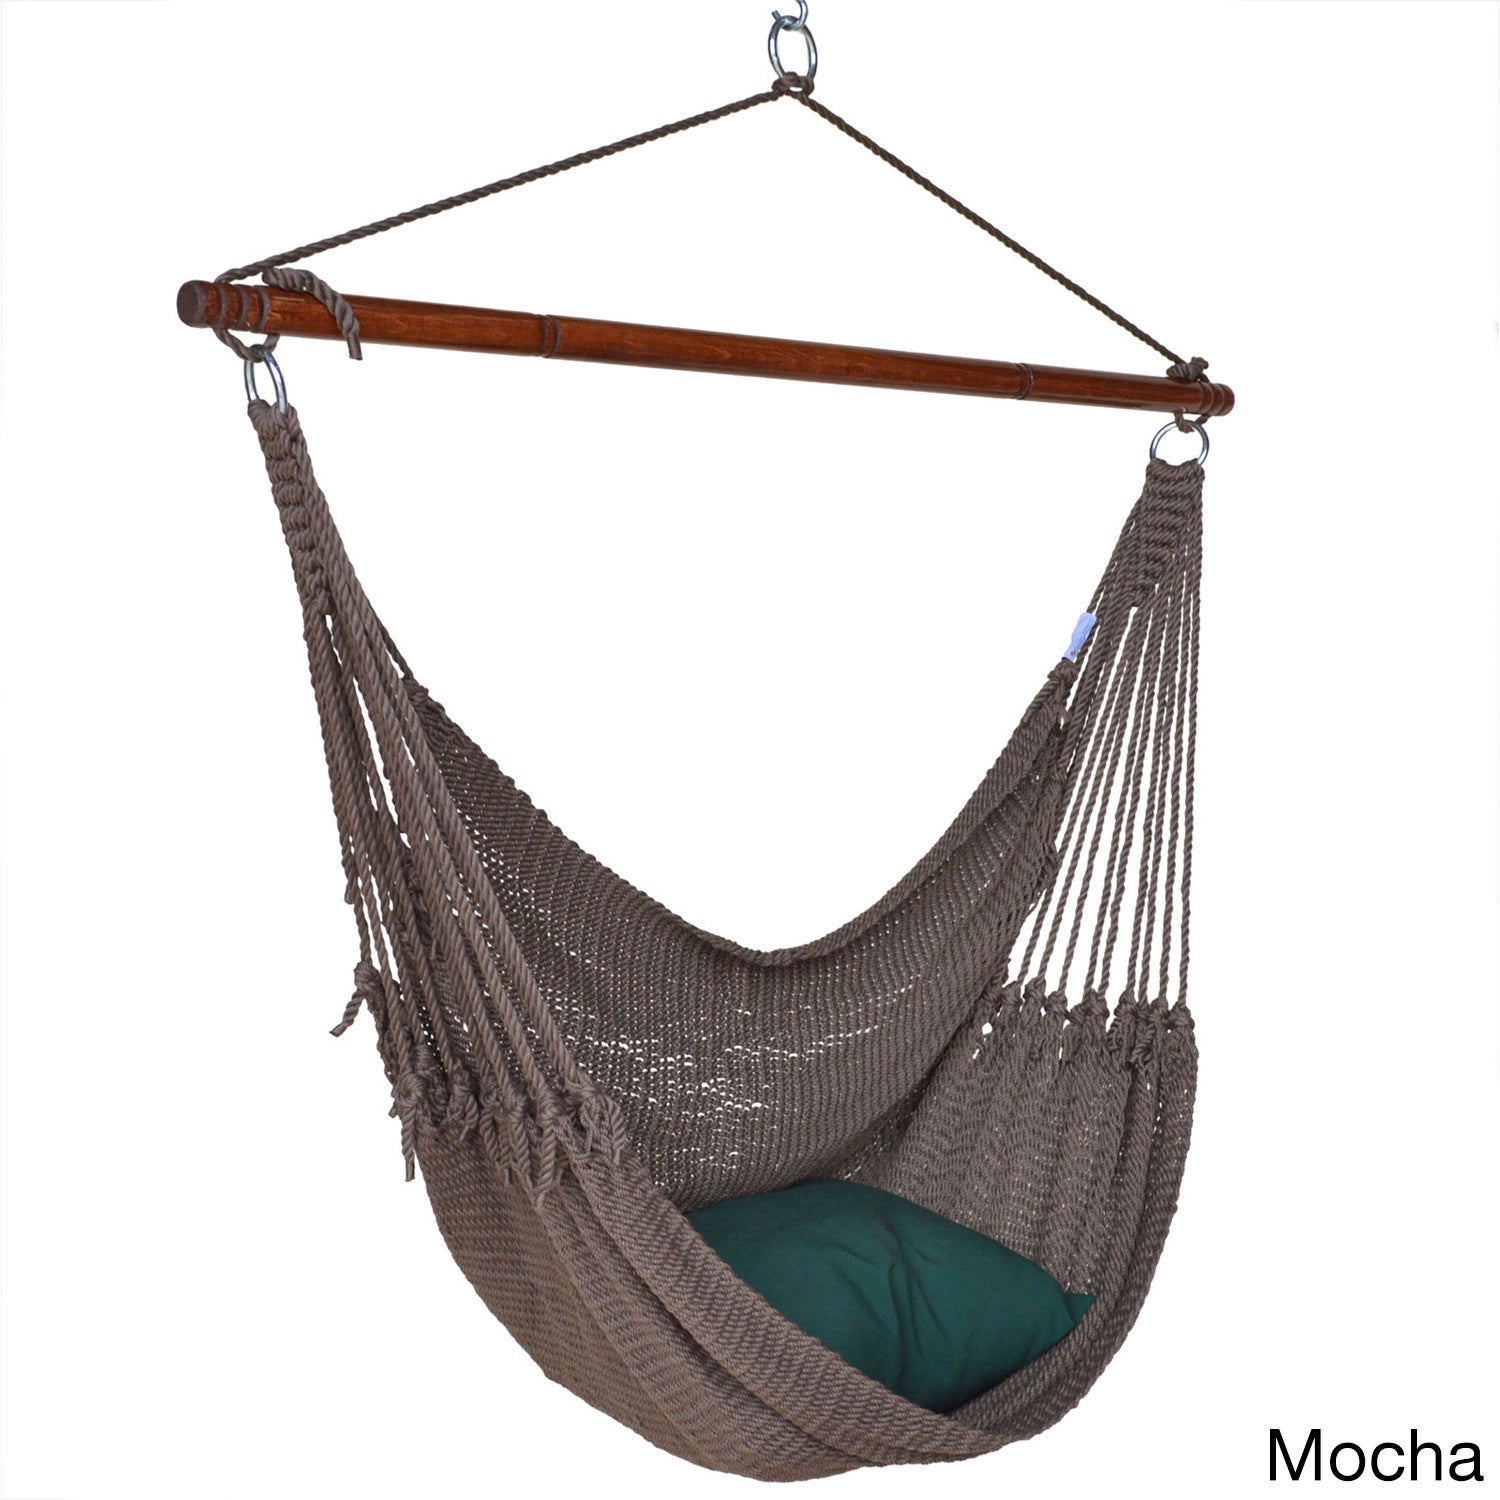 Jumbo Caribbean Hammock Chair With Footrest   55 Inch   Soft Spun Polyester    Free Shipping Today   Overstock   17576751